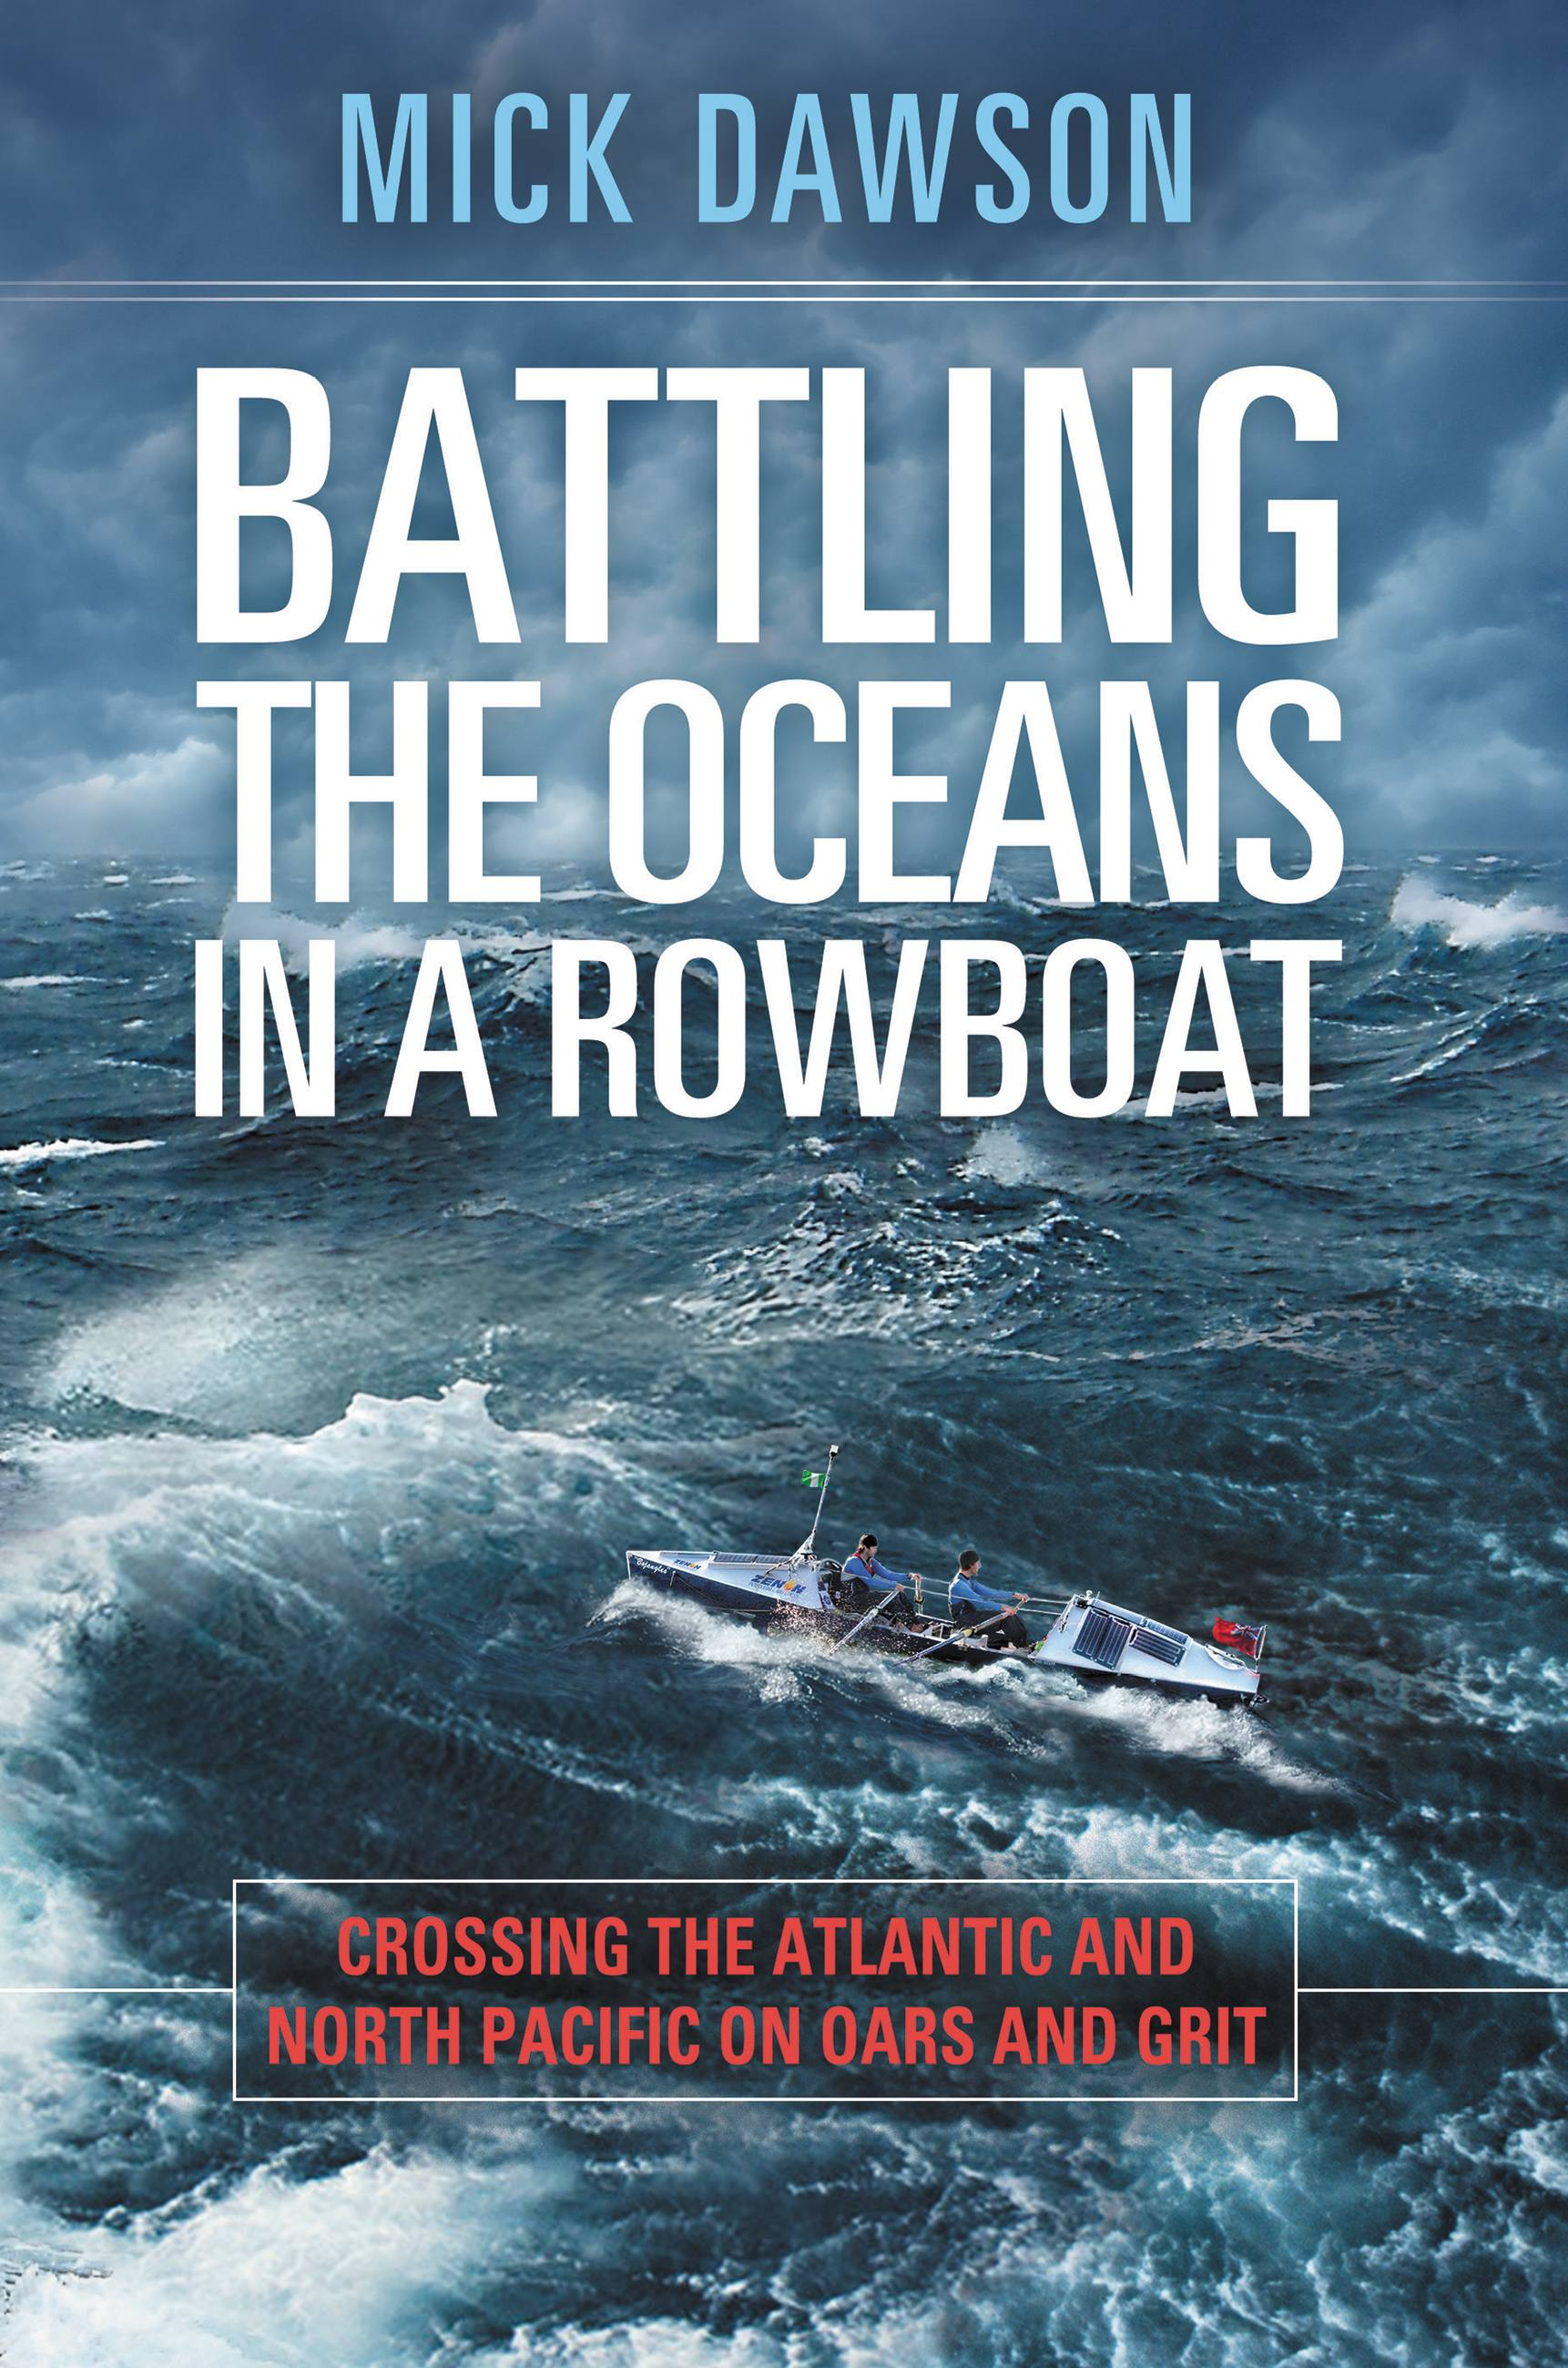 Battling the Ocean in a Rowboat Crossing the Atlantic and North Pacific on Oars and Grit